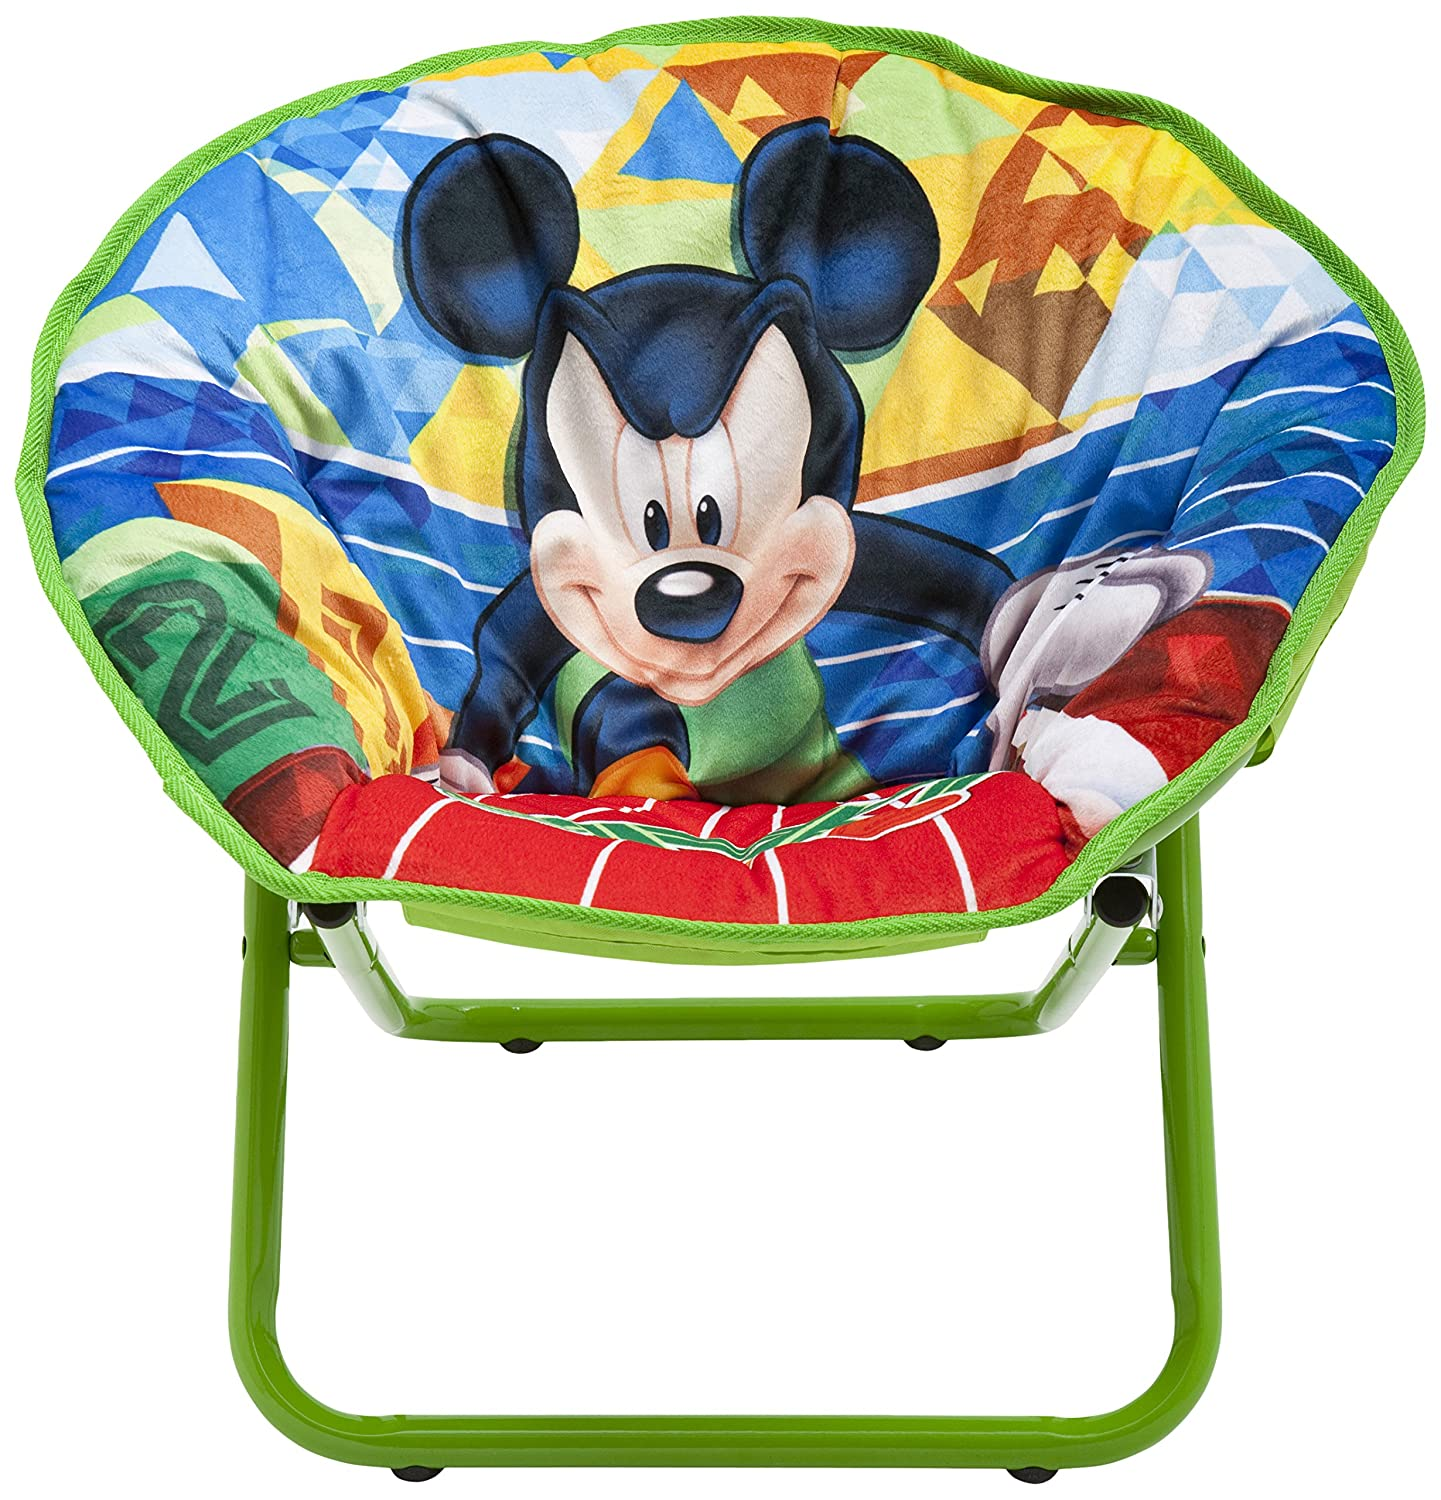 Disney Mickey Mouse Children's Saucer Chair TC85762MM